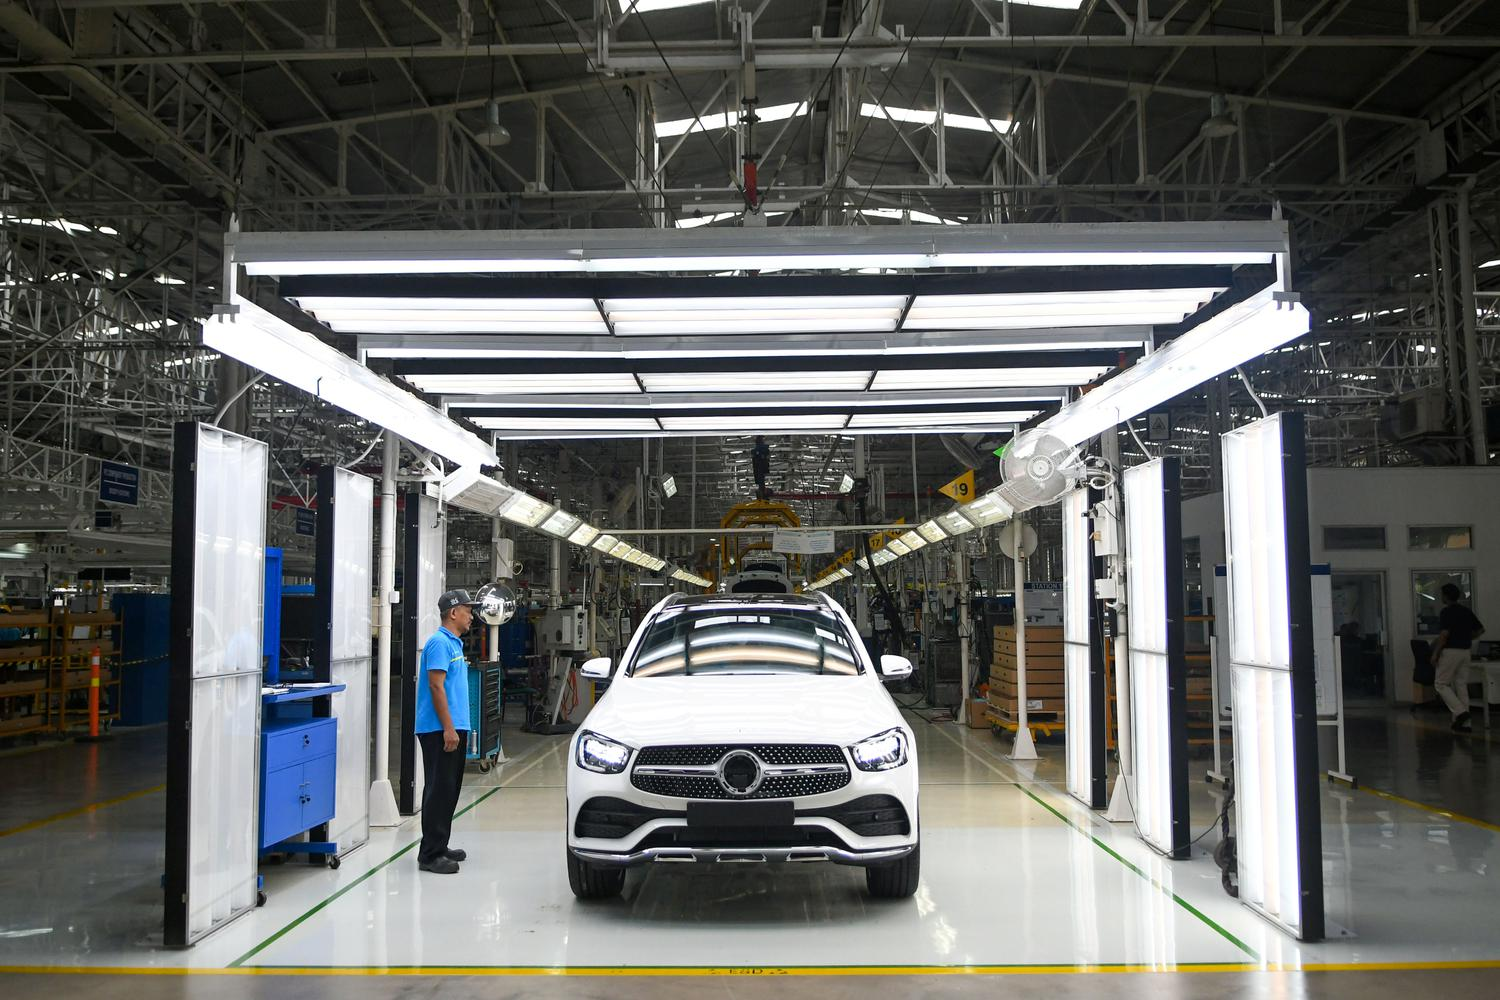 PERAKITAN LOKAL NEW GLC DAN NEW GLE MERCEDES-BENZ